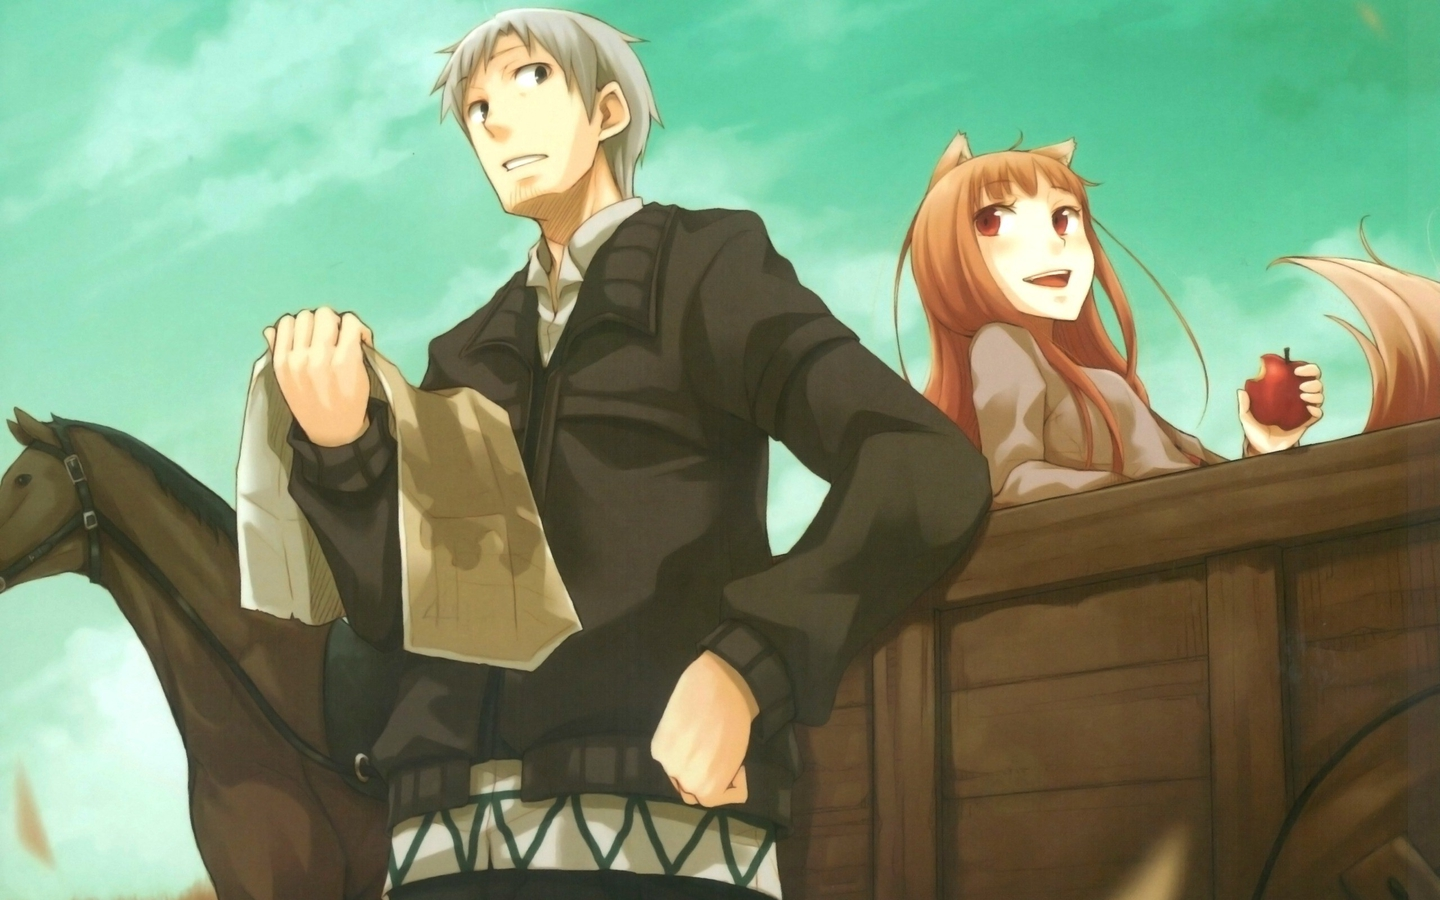 Spice and Wolf wallpaper by lightningcloud on